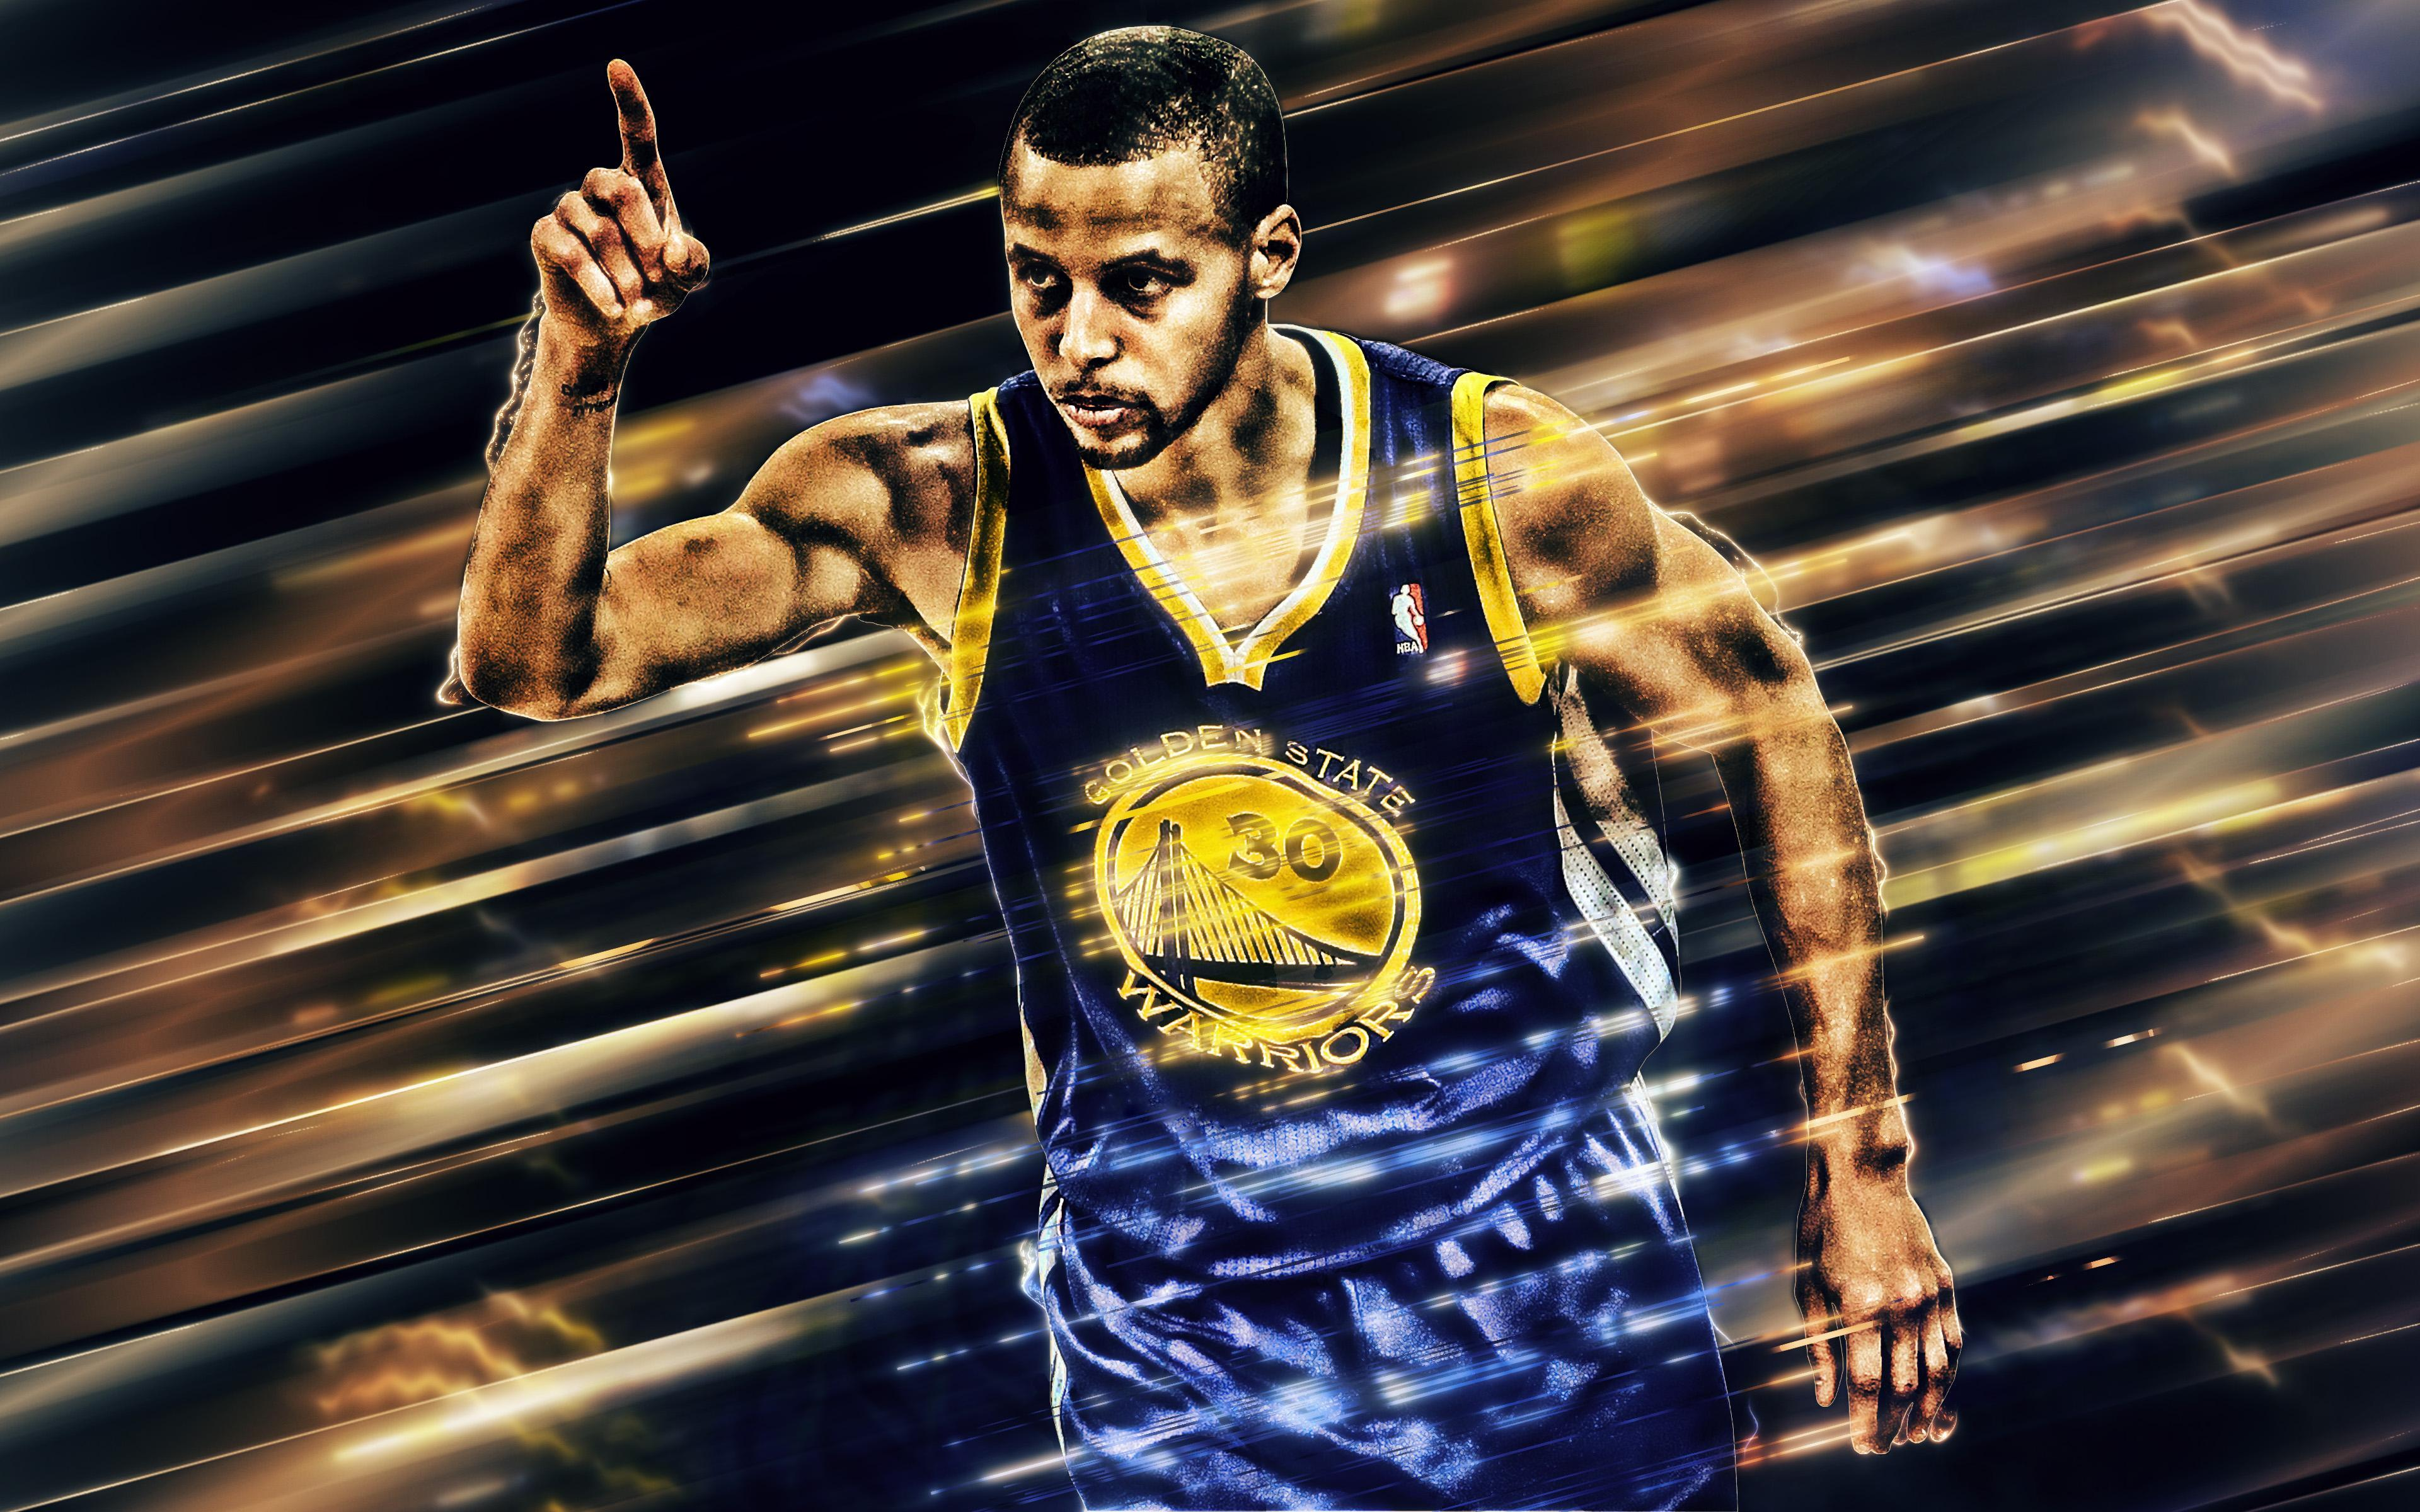 Sport Wallpaper Stephen Curry: Stephen Curry 2019 Wallpapers